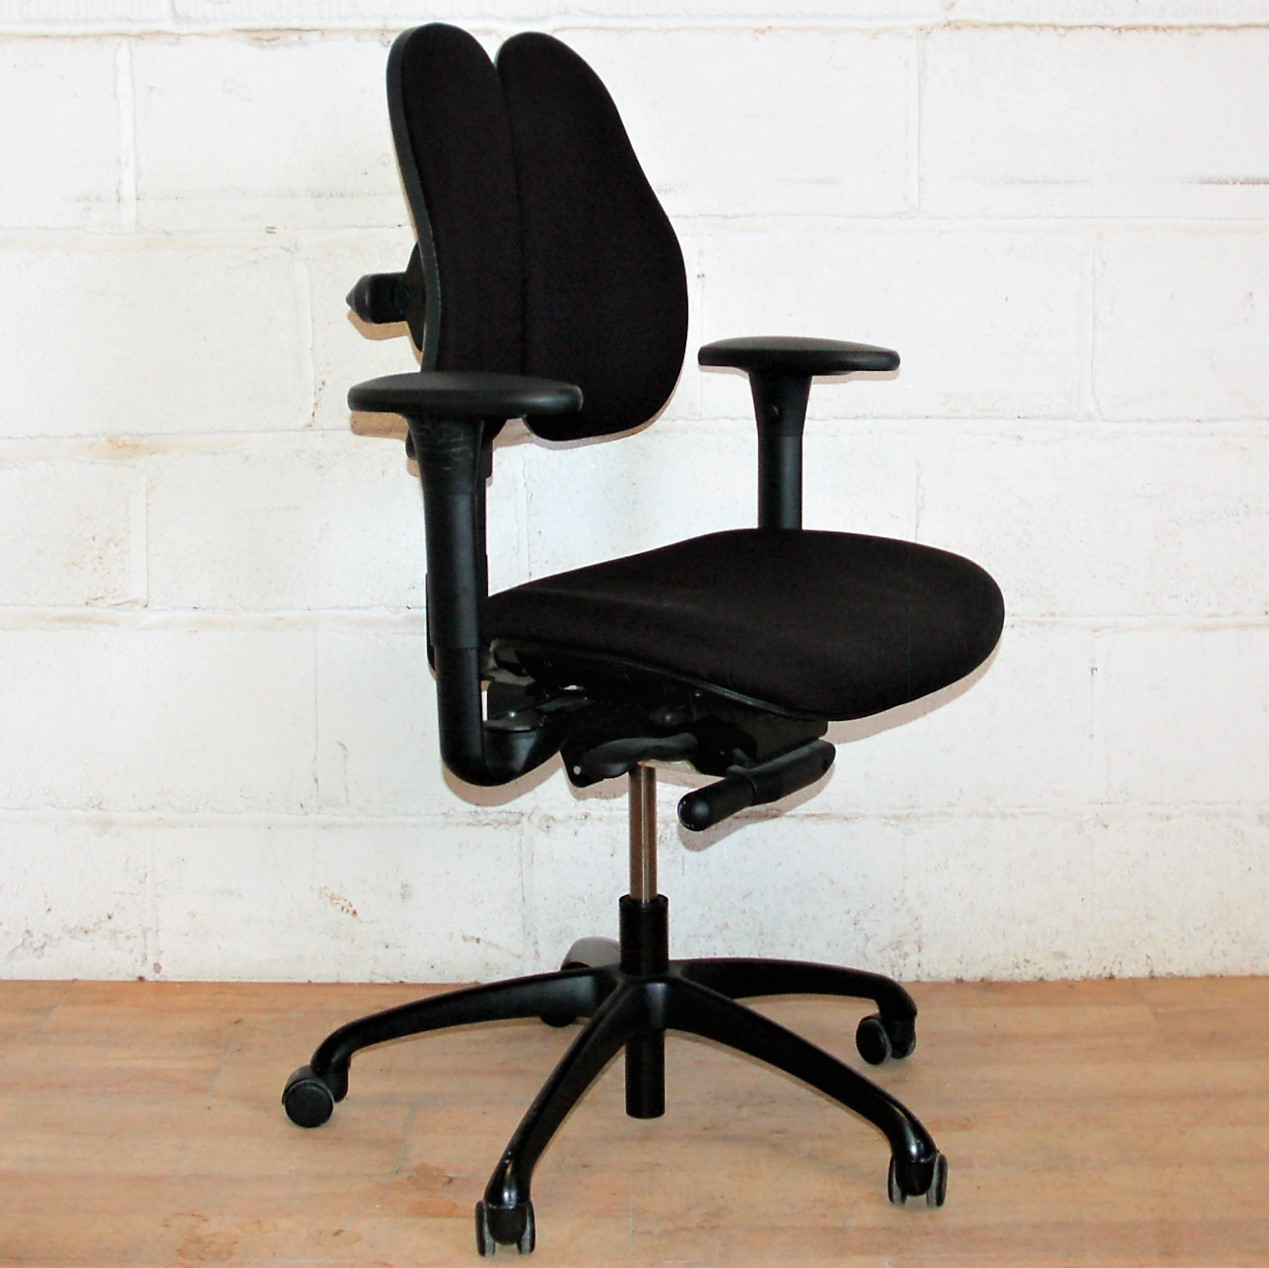 Work Chair Rohde Grahl Duo Back 11 Ergonomic Task Chair 2141